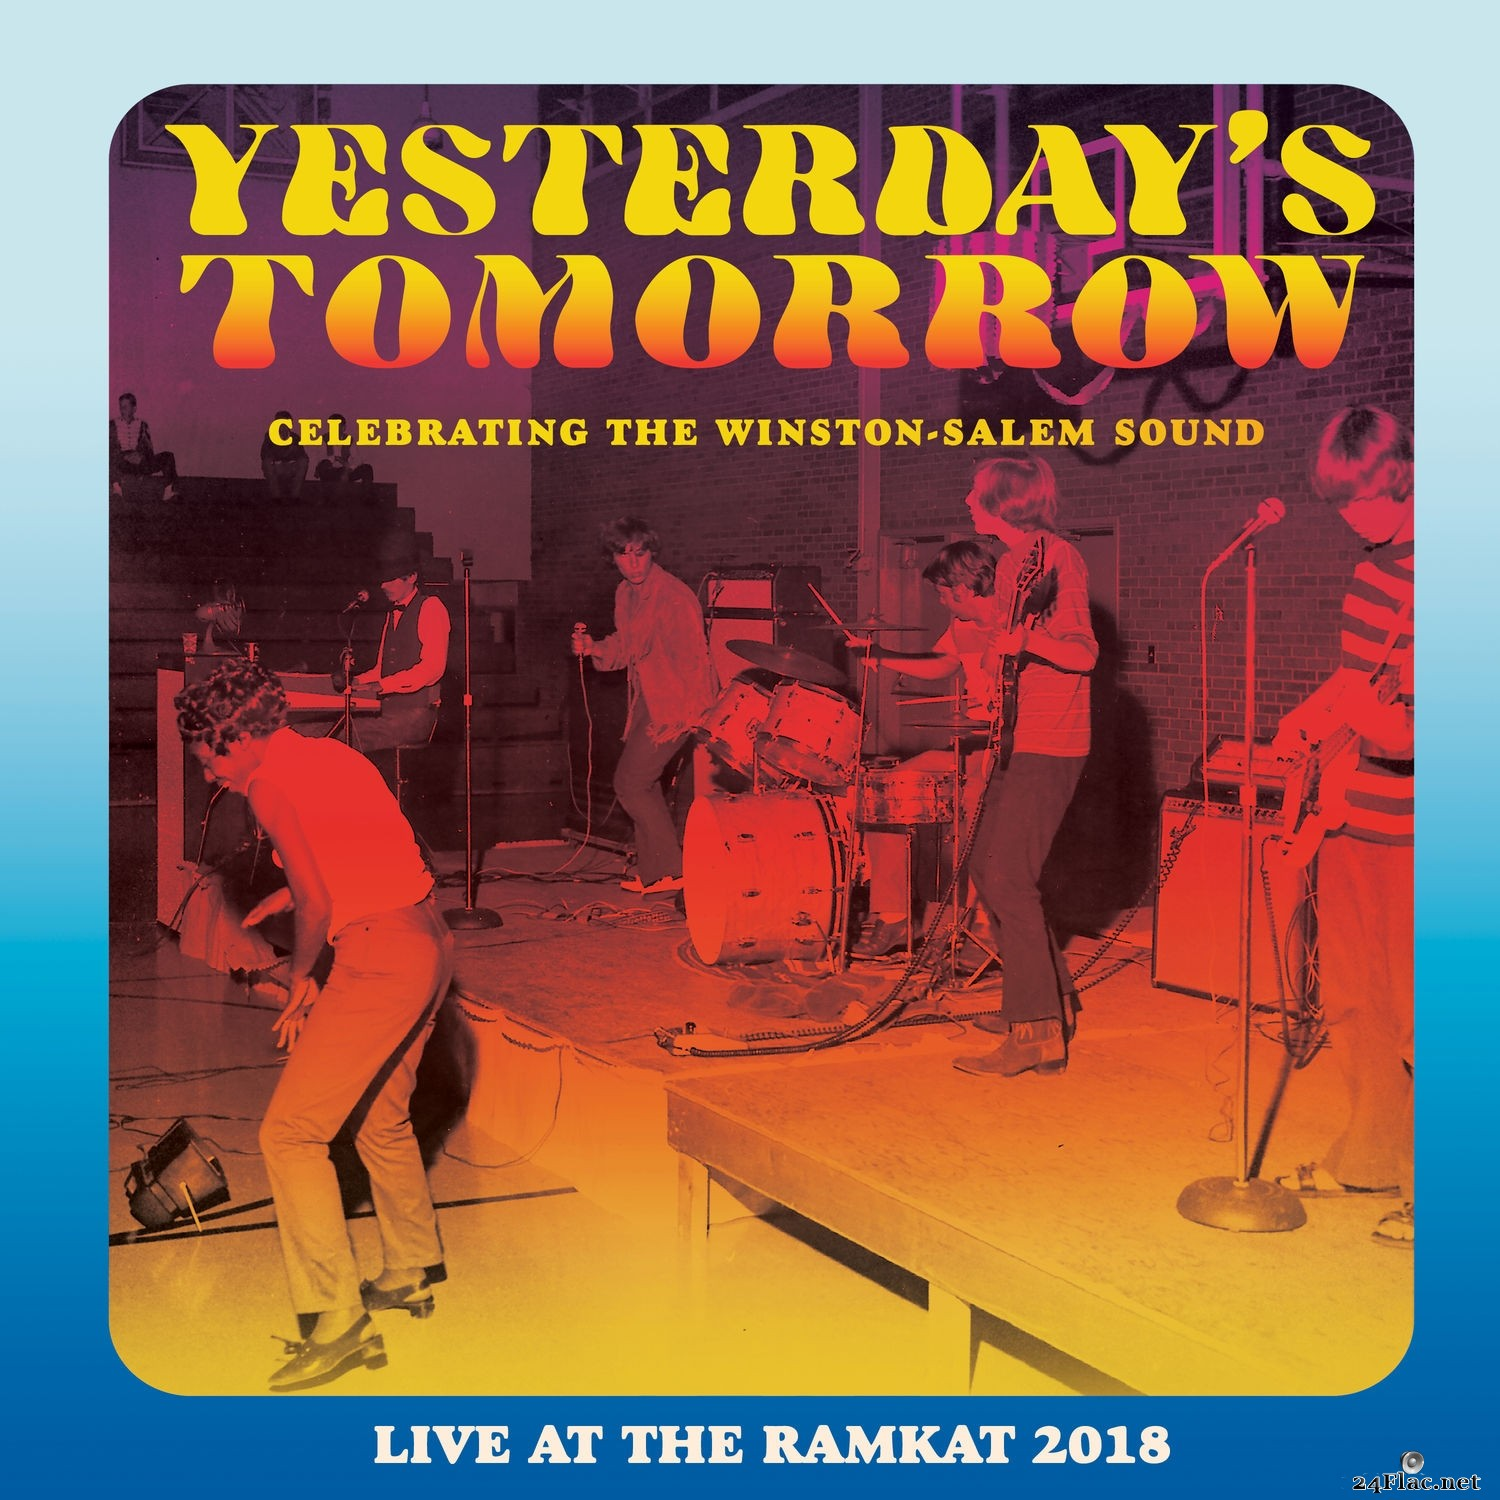 Yesterday's Tomorrow: Celebrating The Winston-Salem Sound (2021) Hi-Res